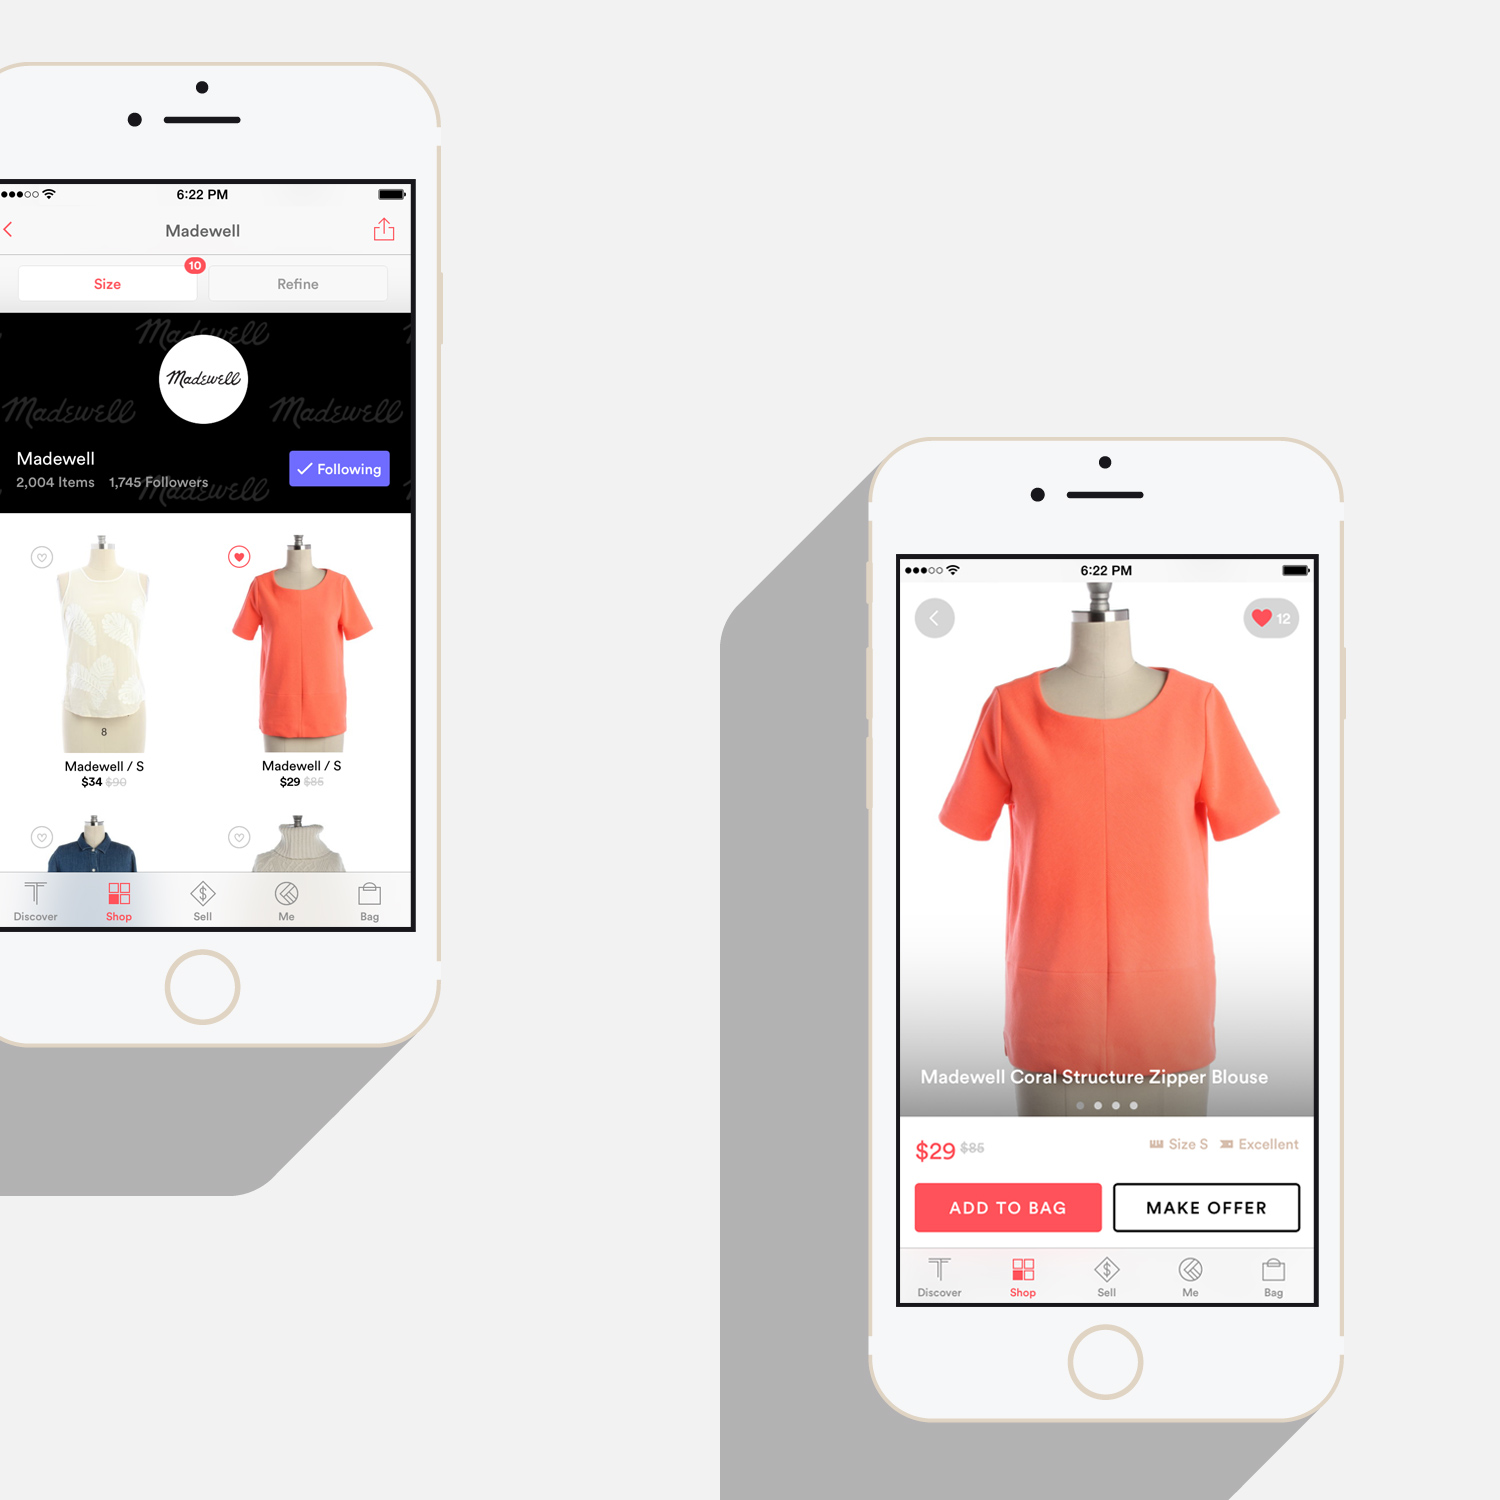 iOS app brand page and item page